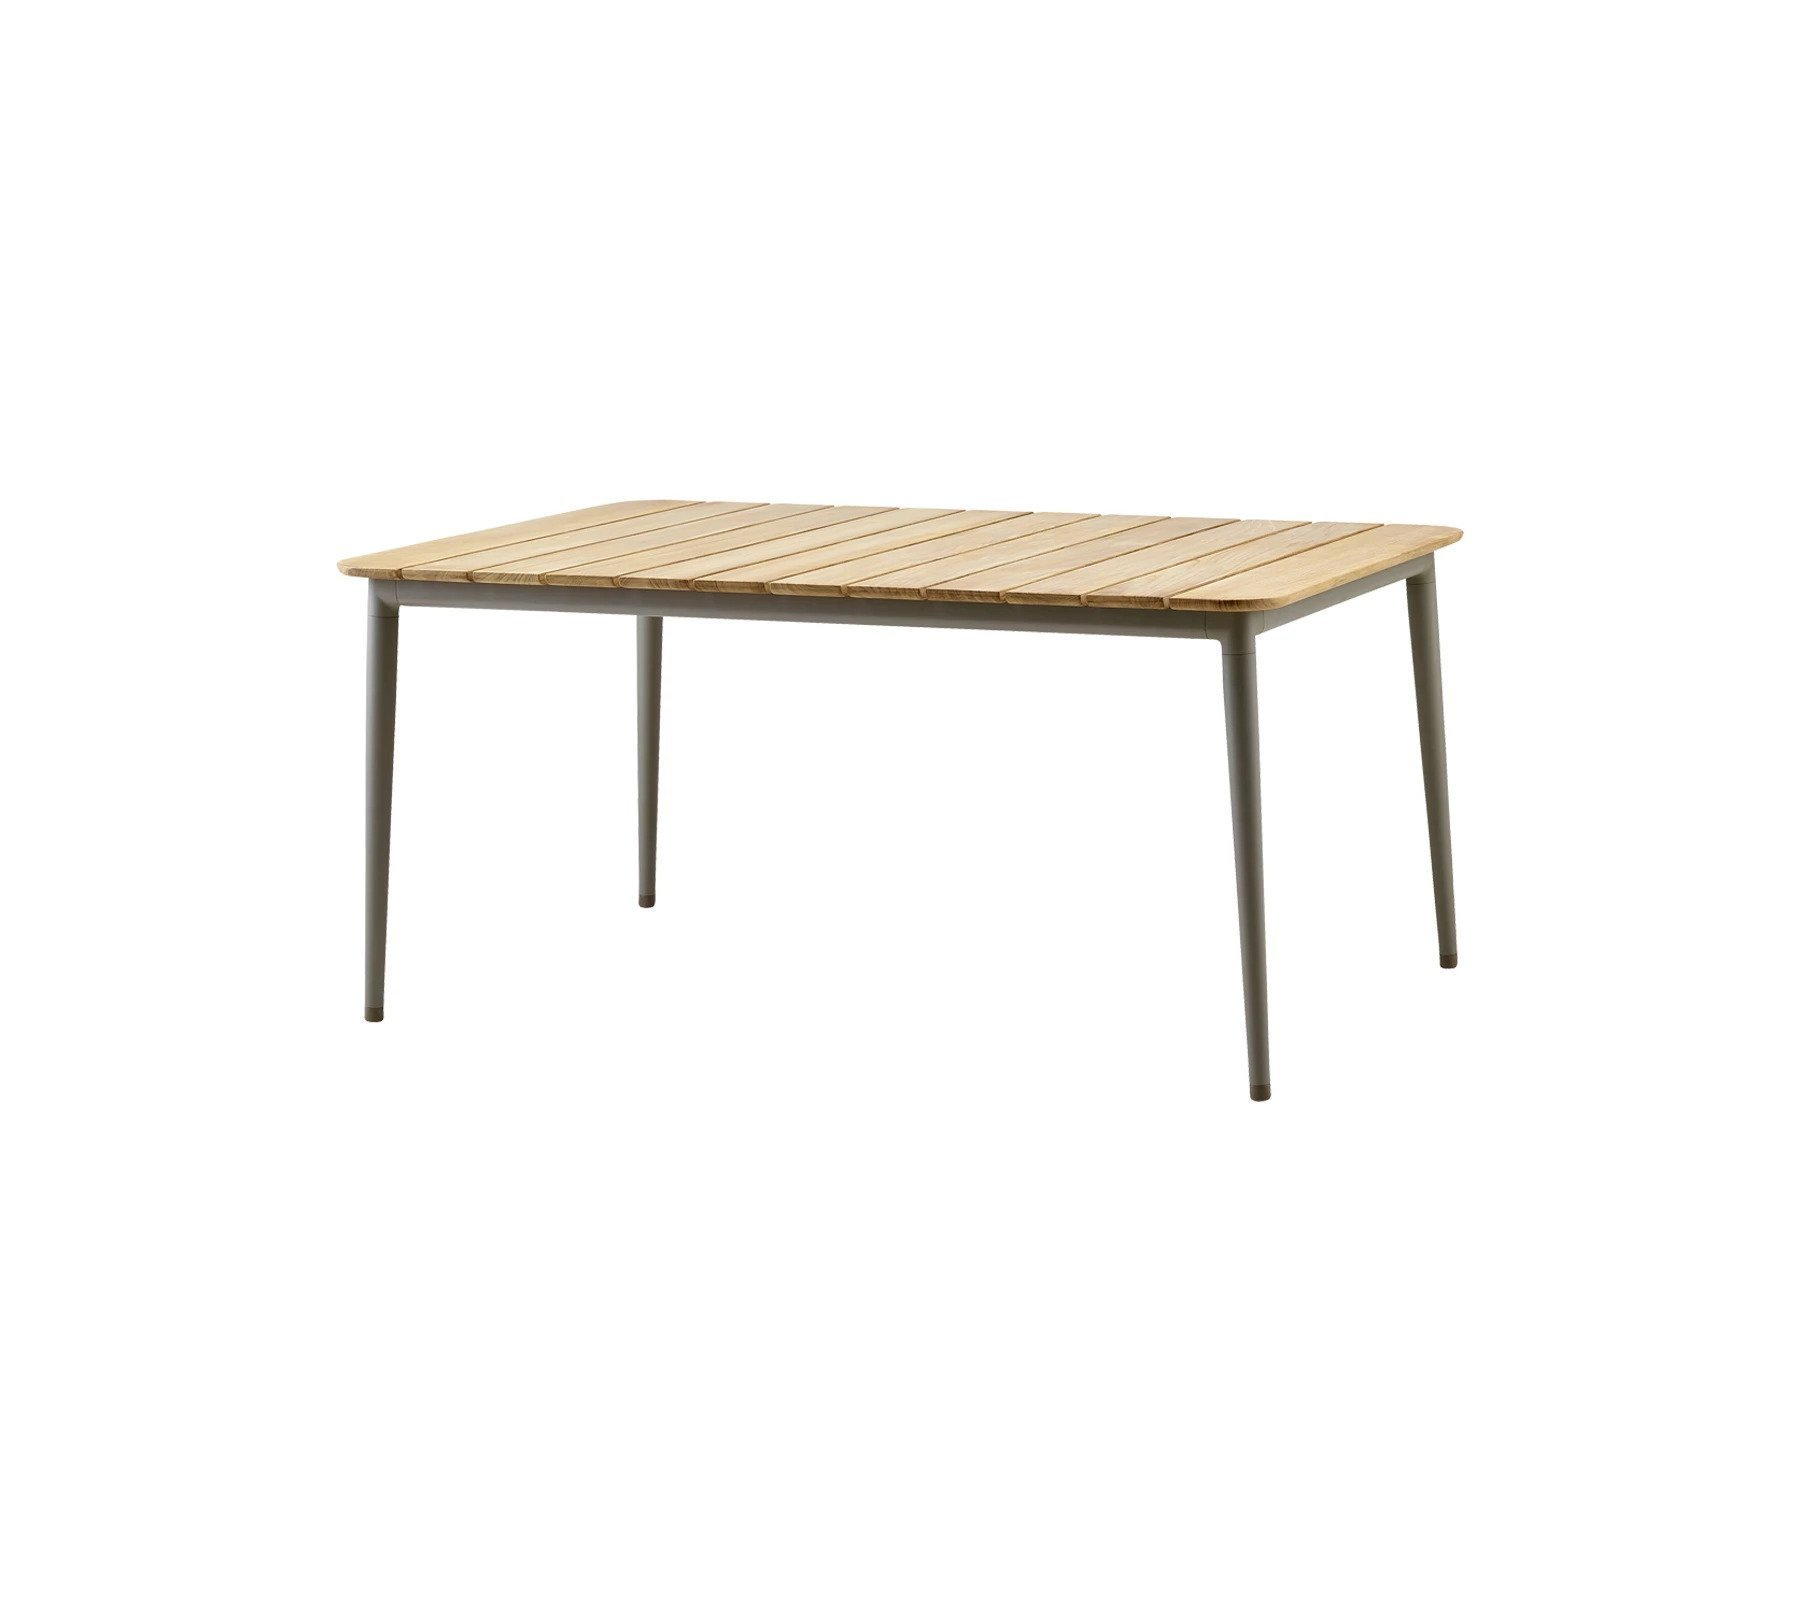 Cane Line - Core Table